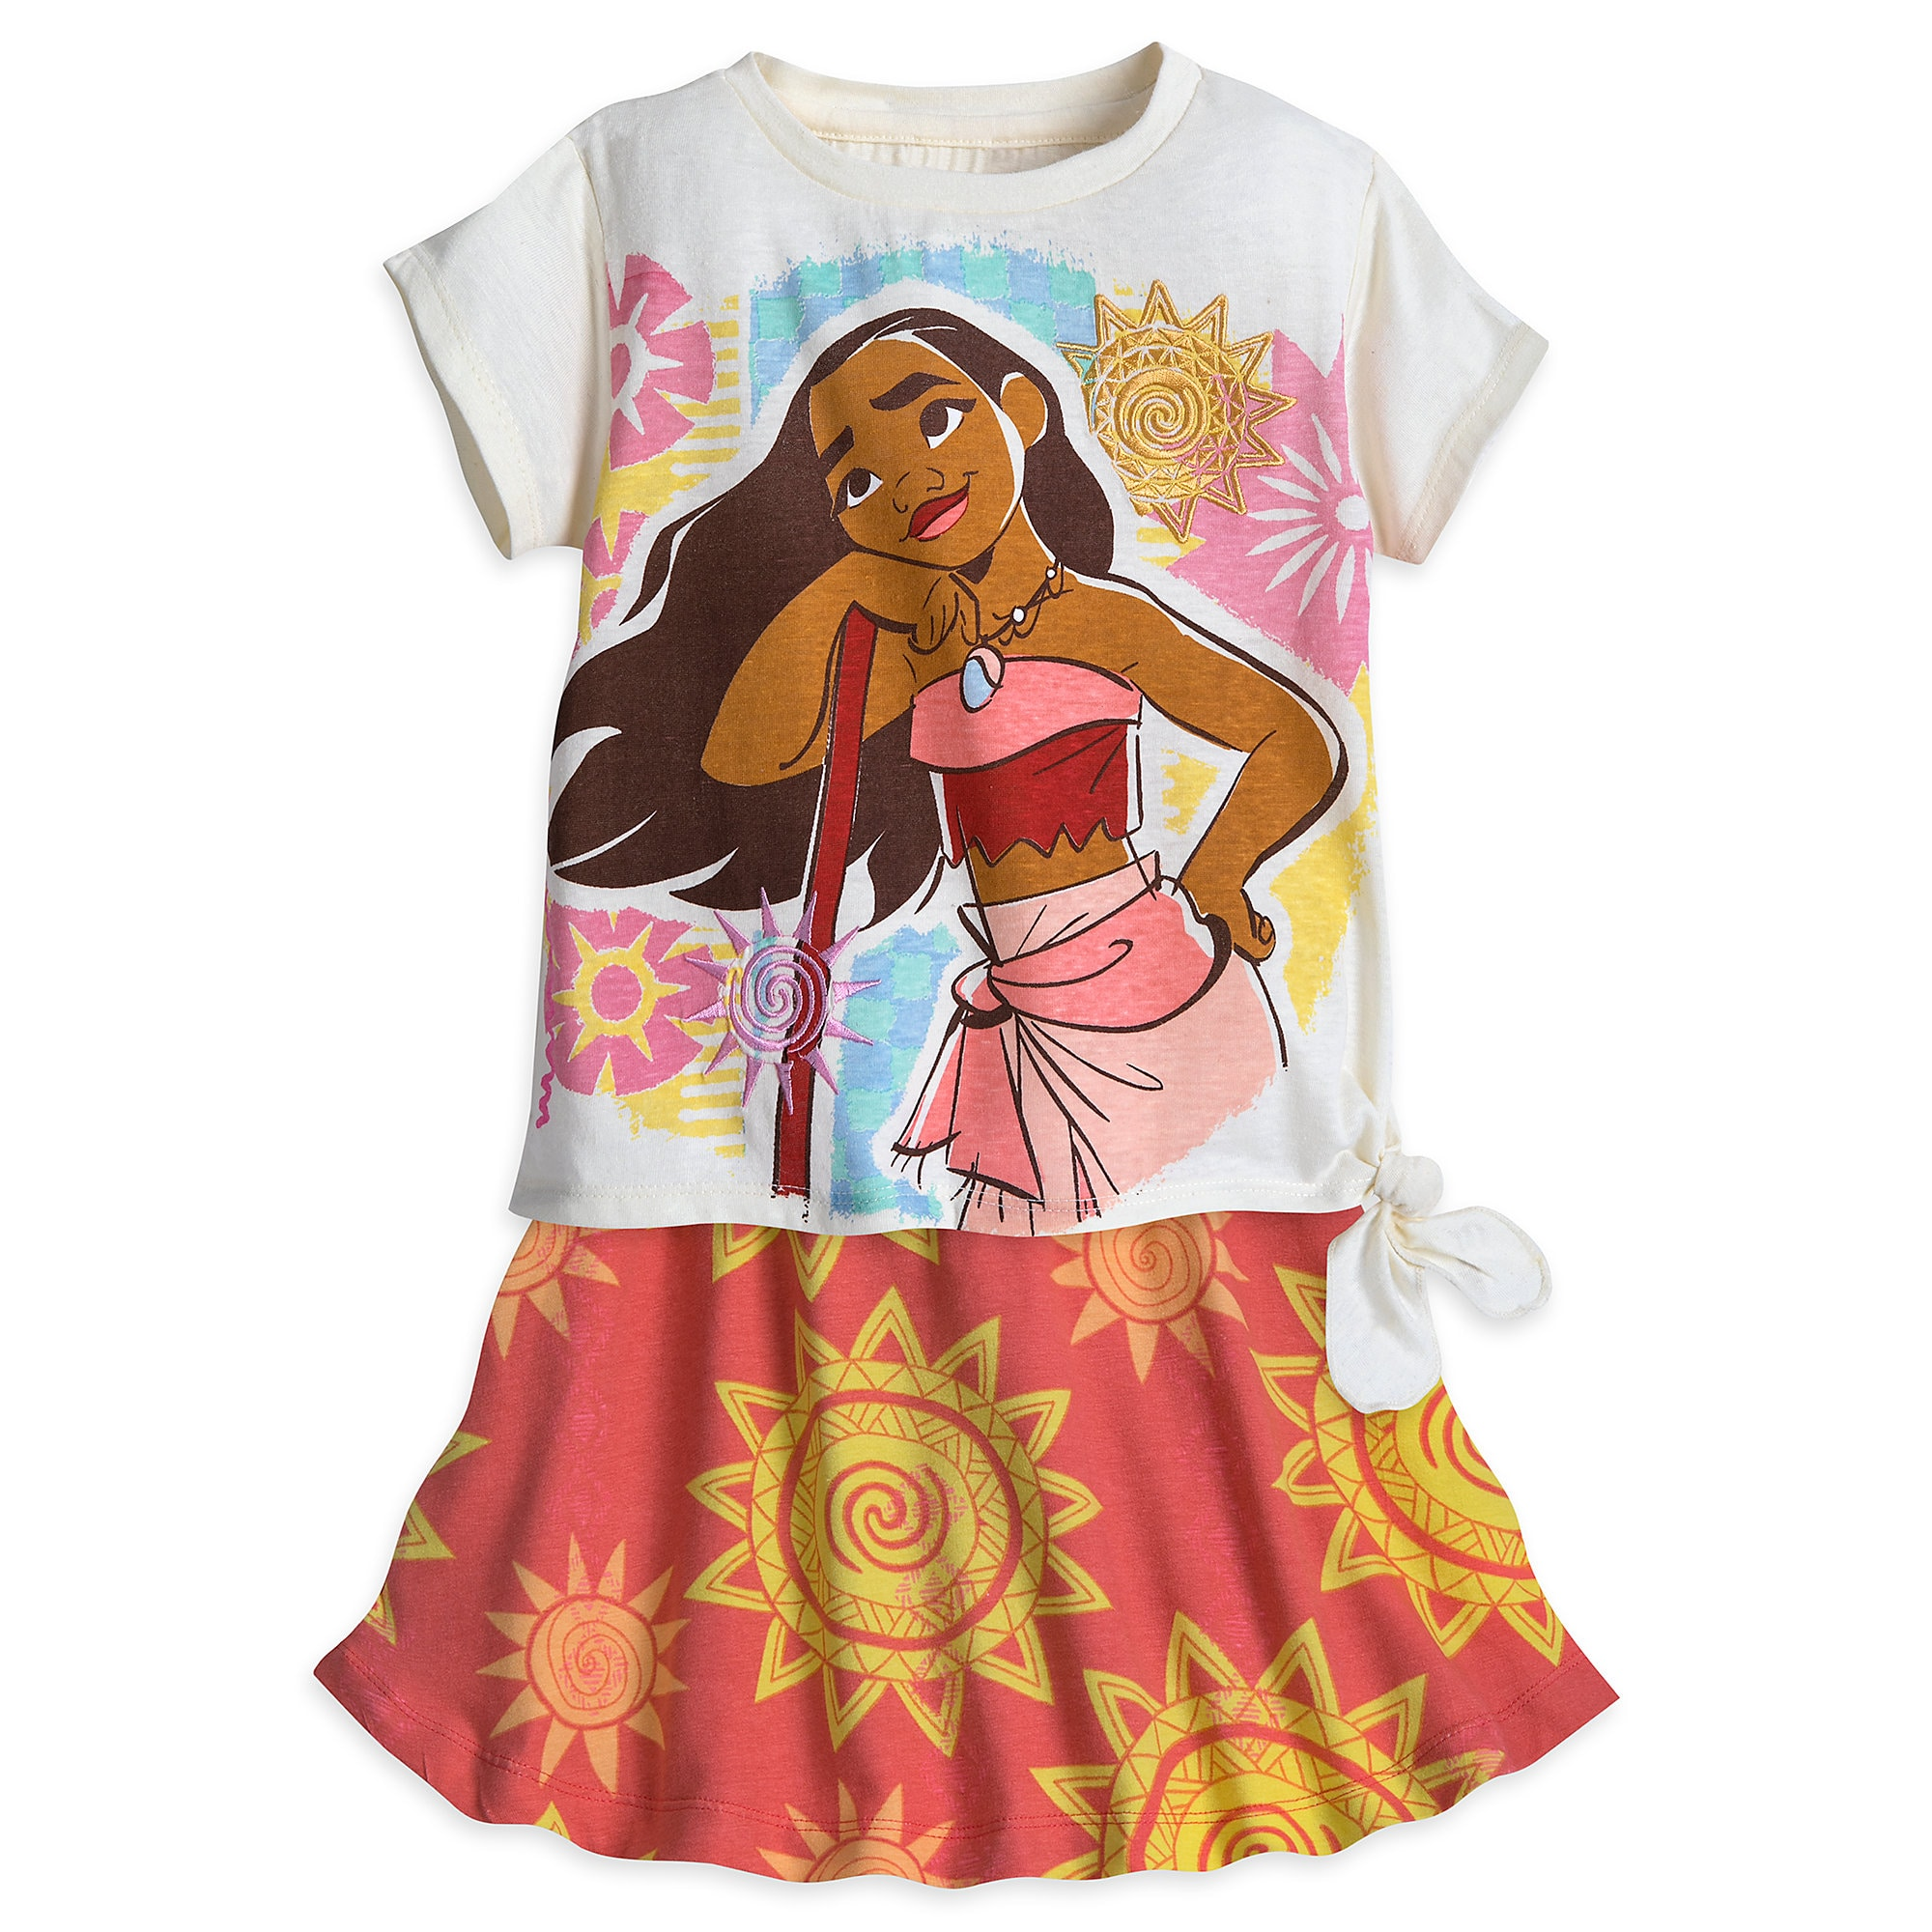 Moana Shirt and Skirt Set for Girls